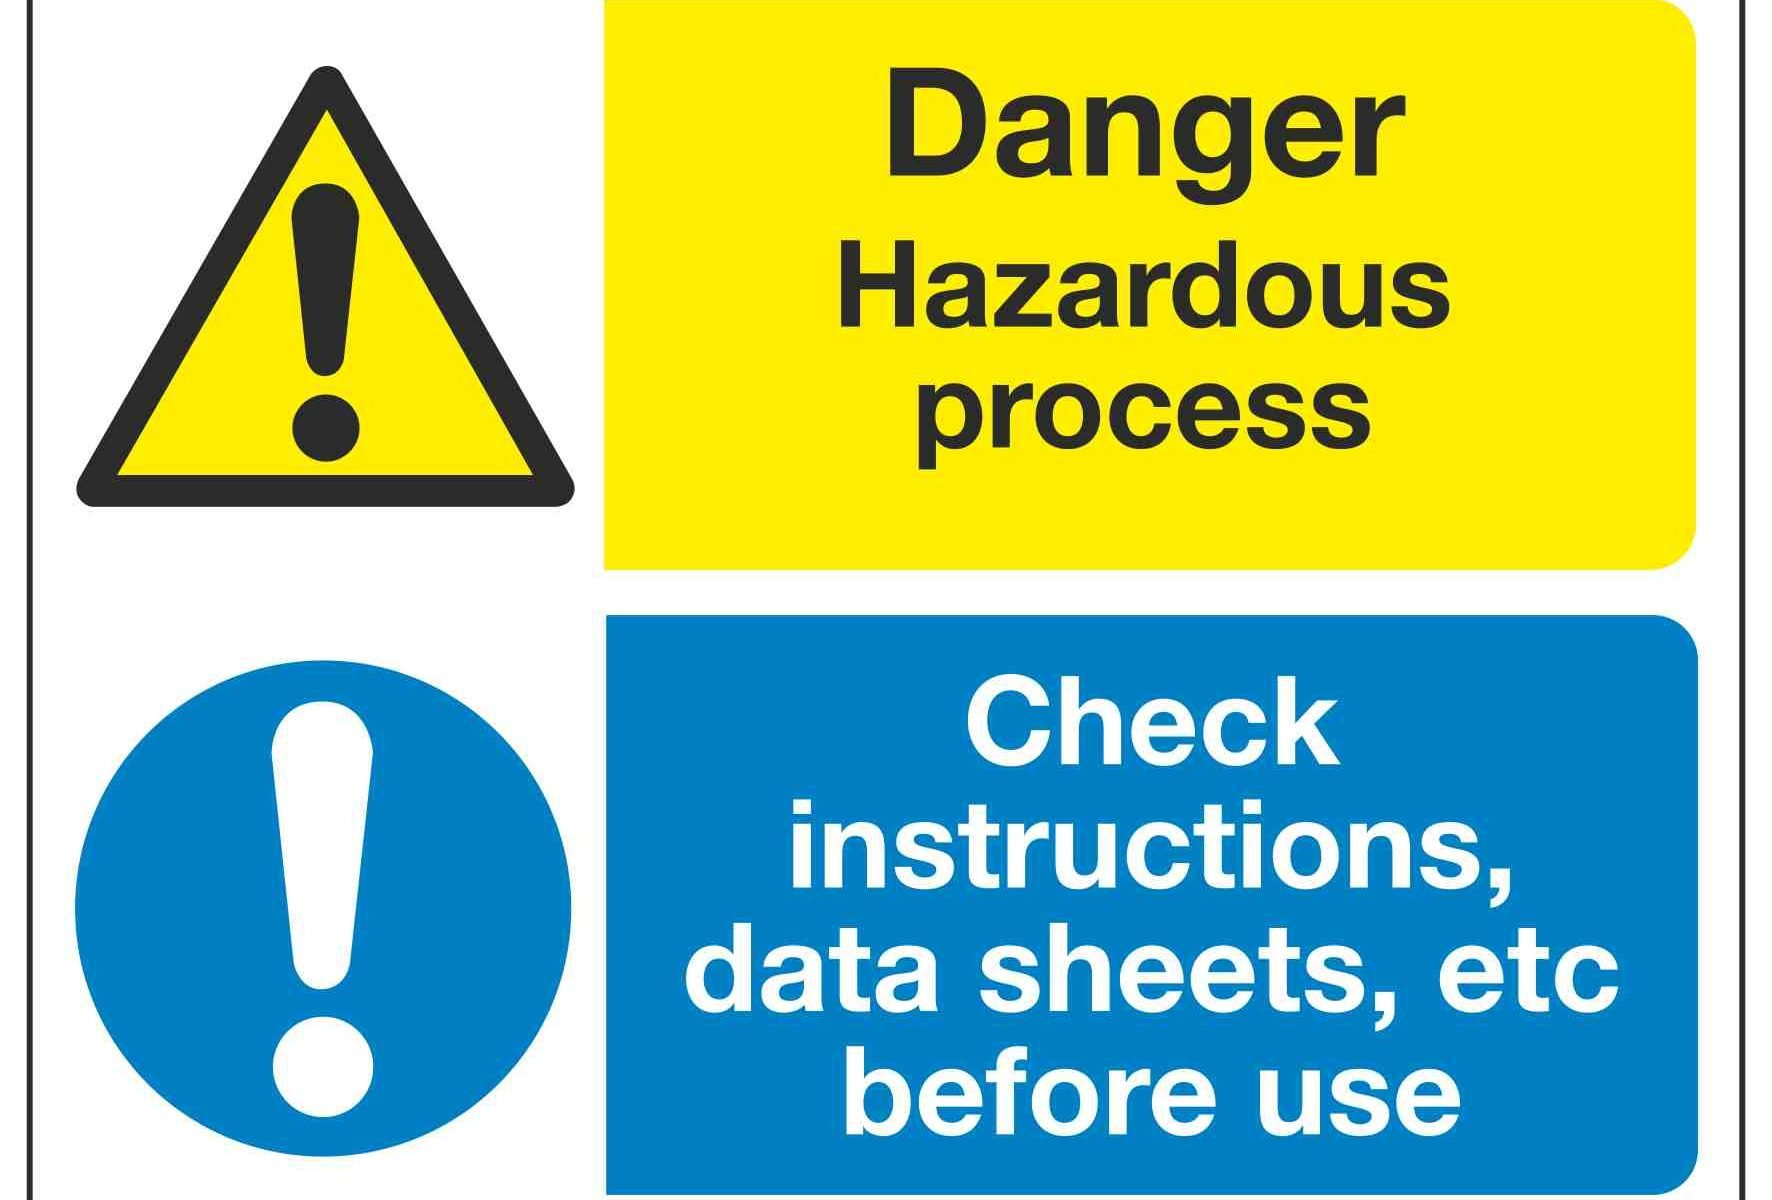 Danger Hazardous process Check instructions, data sheets, etc before use